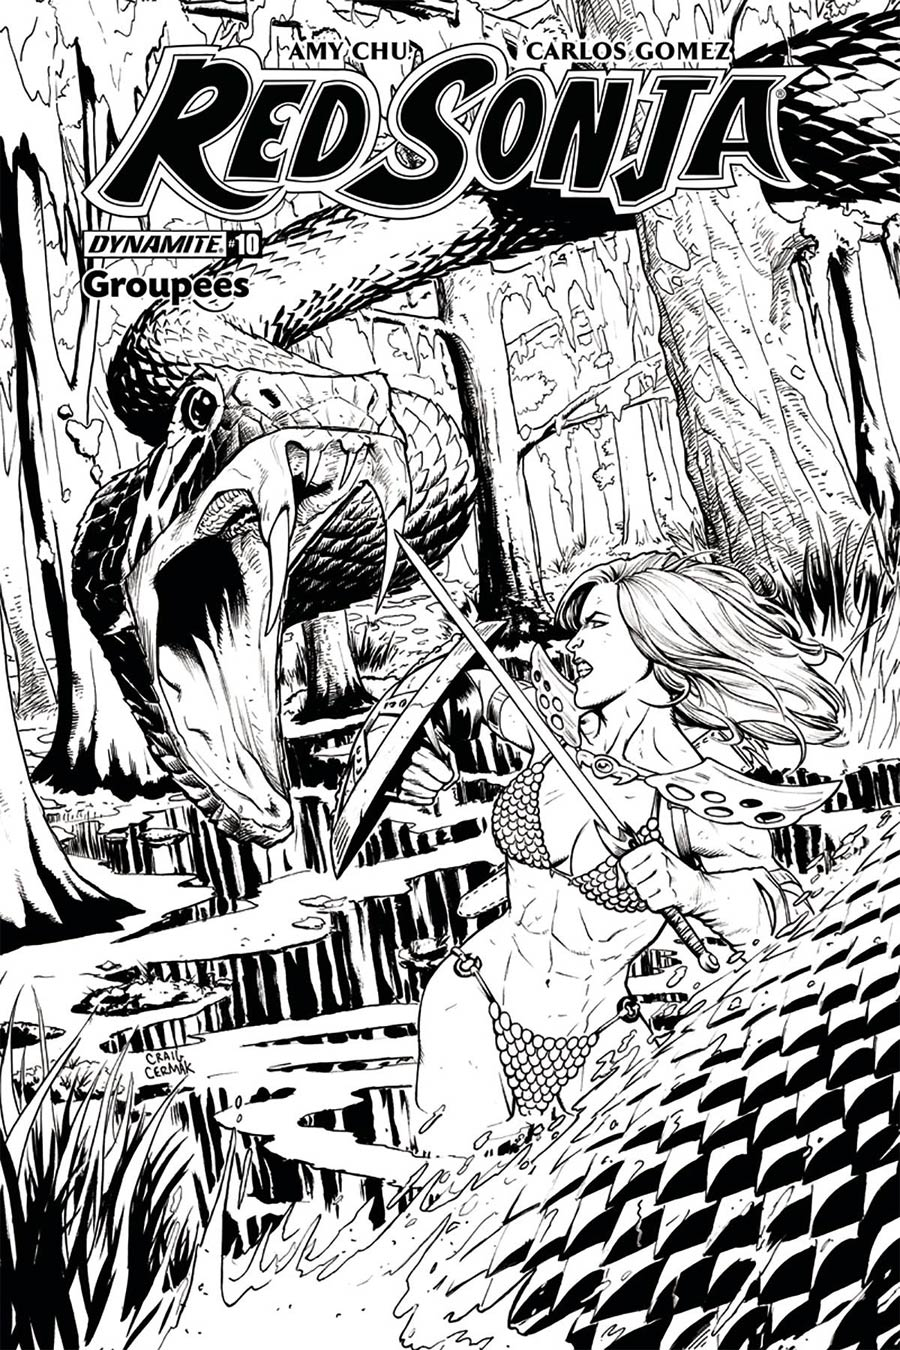 Red Sonja Vol 7 #10 Cover J Groupees Exclusive Craig Cermak Black & White Variant Cover